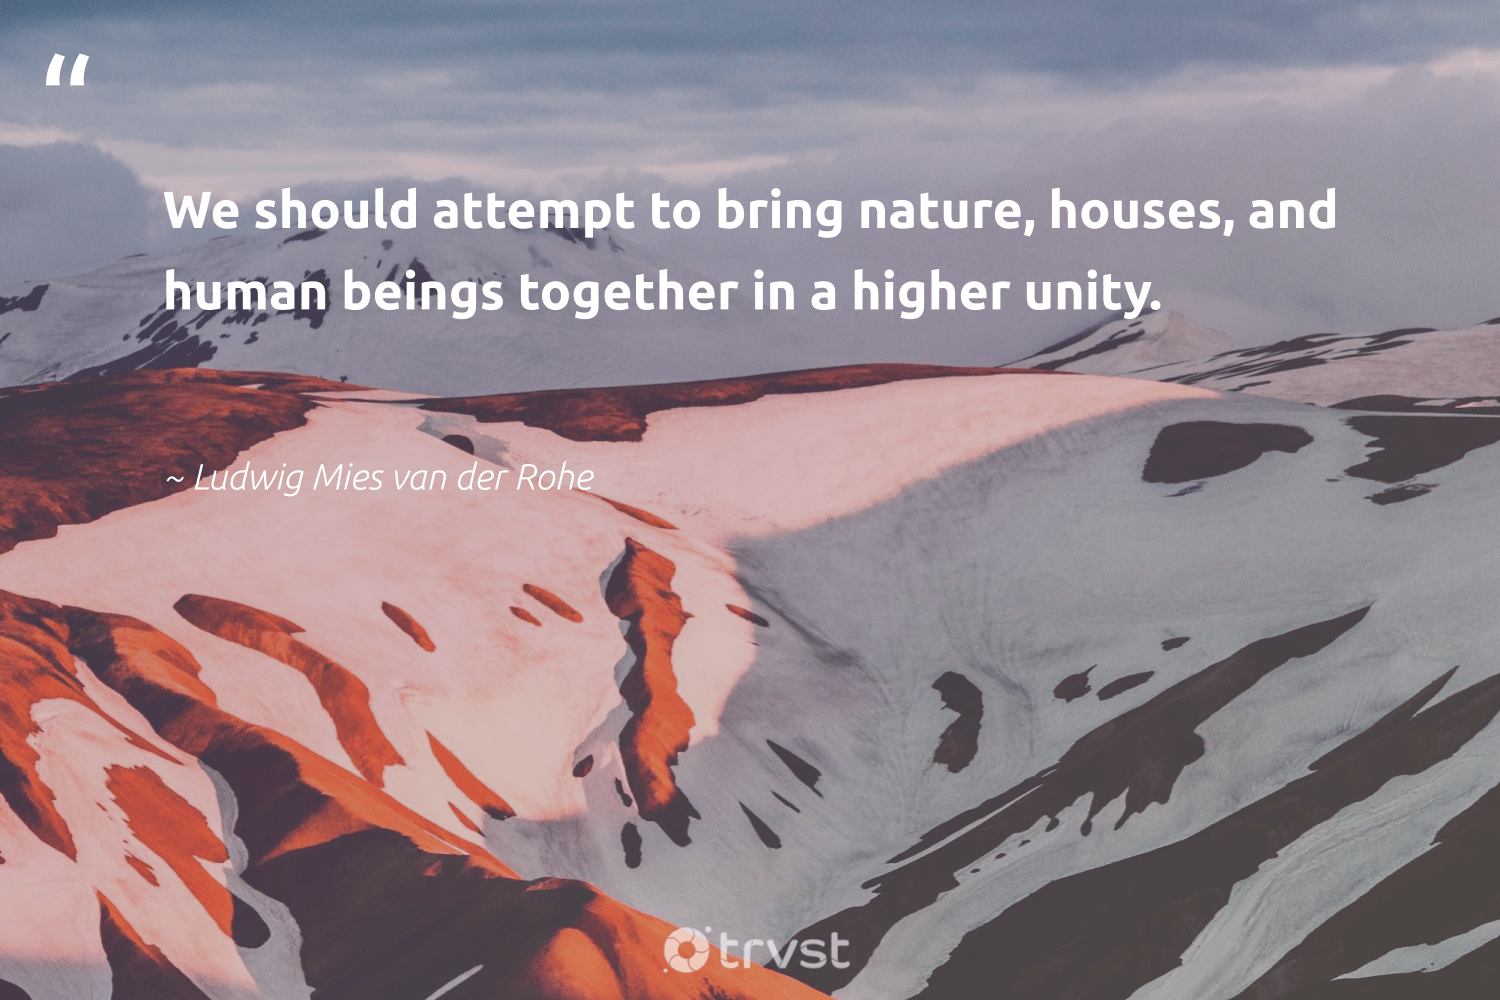 """""""We should attempt to bring nature, houses, and human beings together in a higher unity.""""  - Ludwig Mies van der Rohe #trvst #quotes #environment #nature #giveback #wildernessnation #changetheworld #planet #gogreen #naturelovers #socialimpact #conservation"""